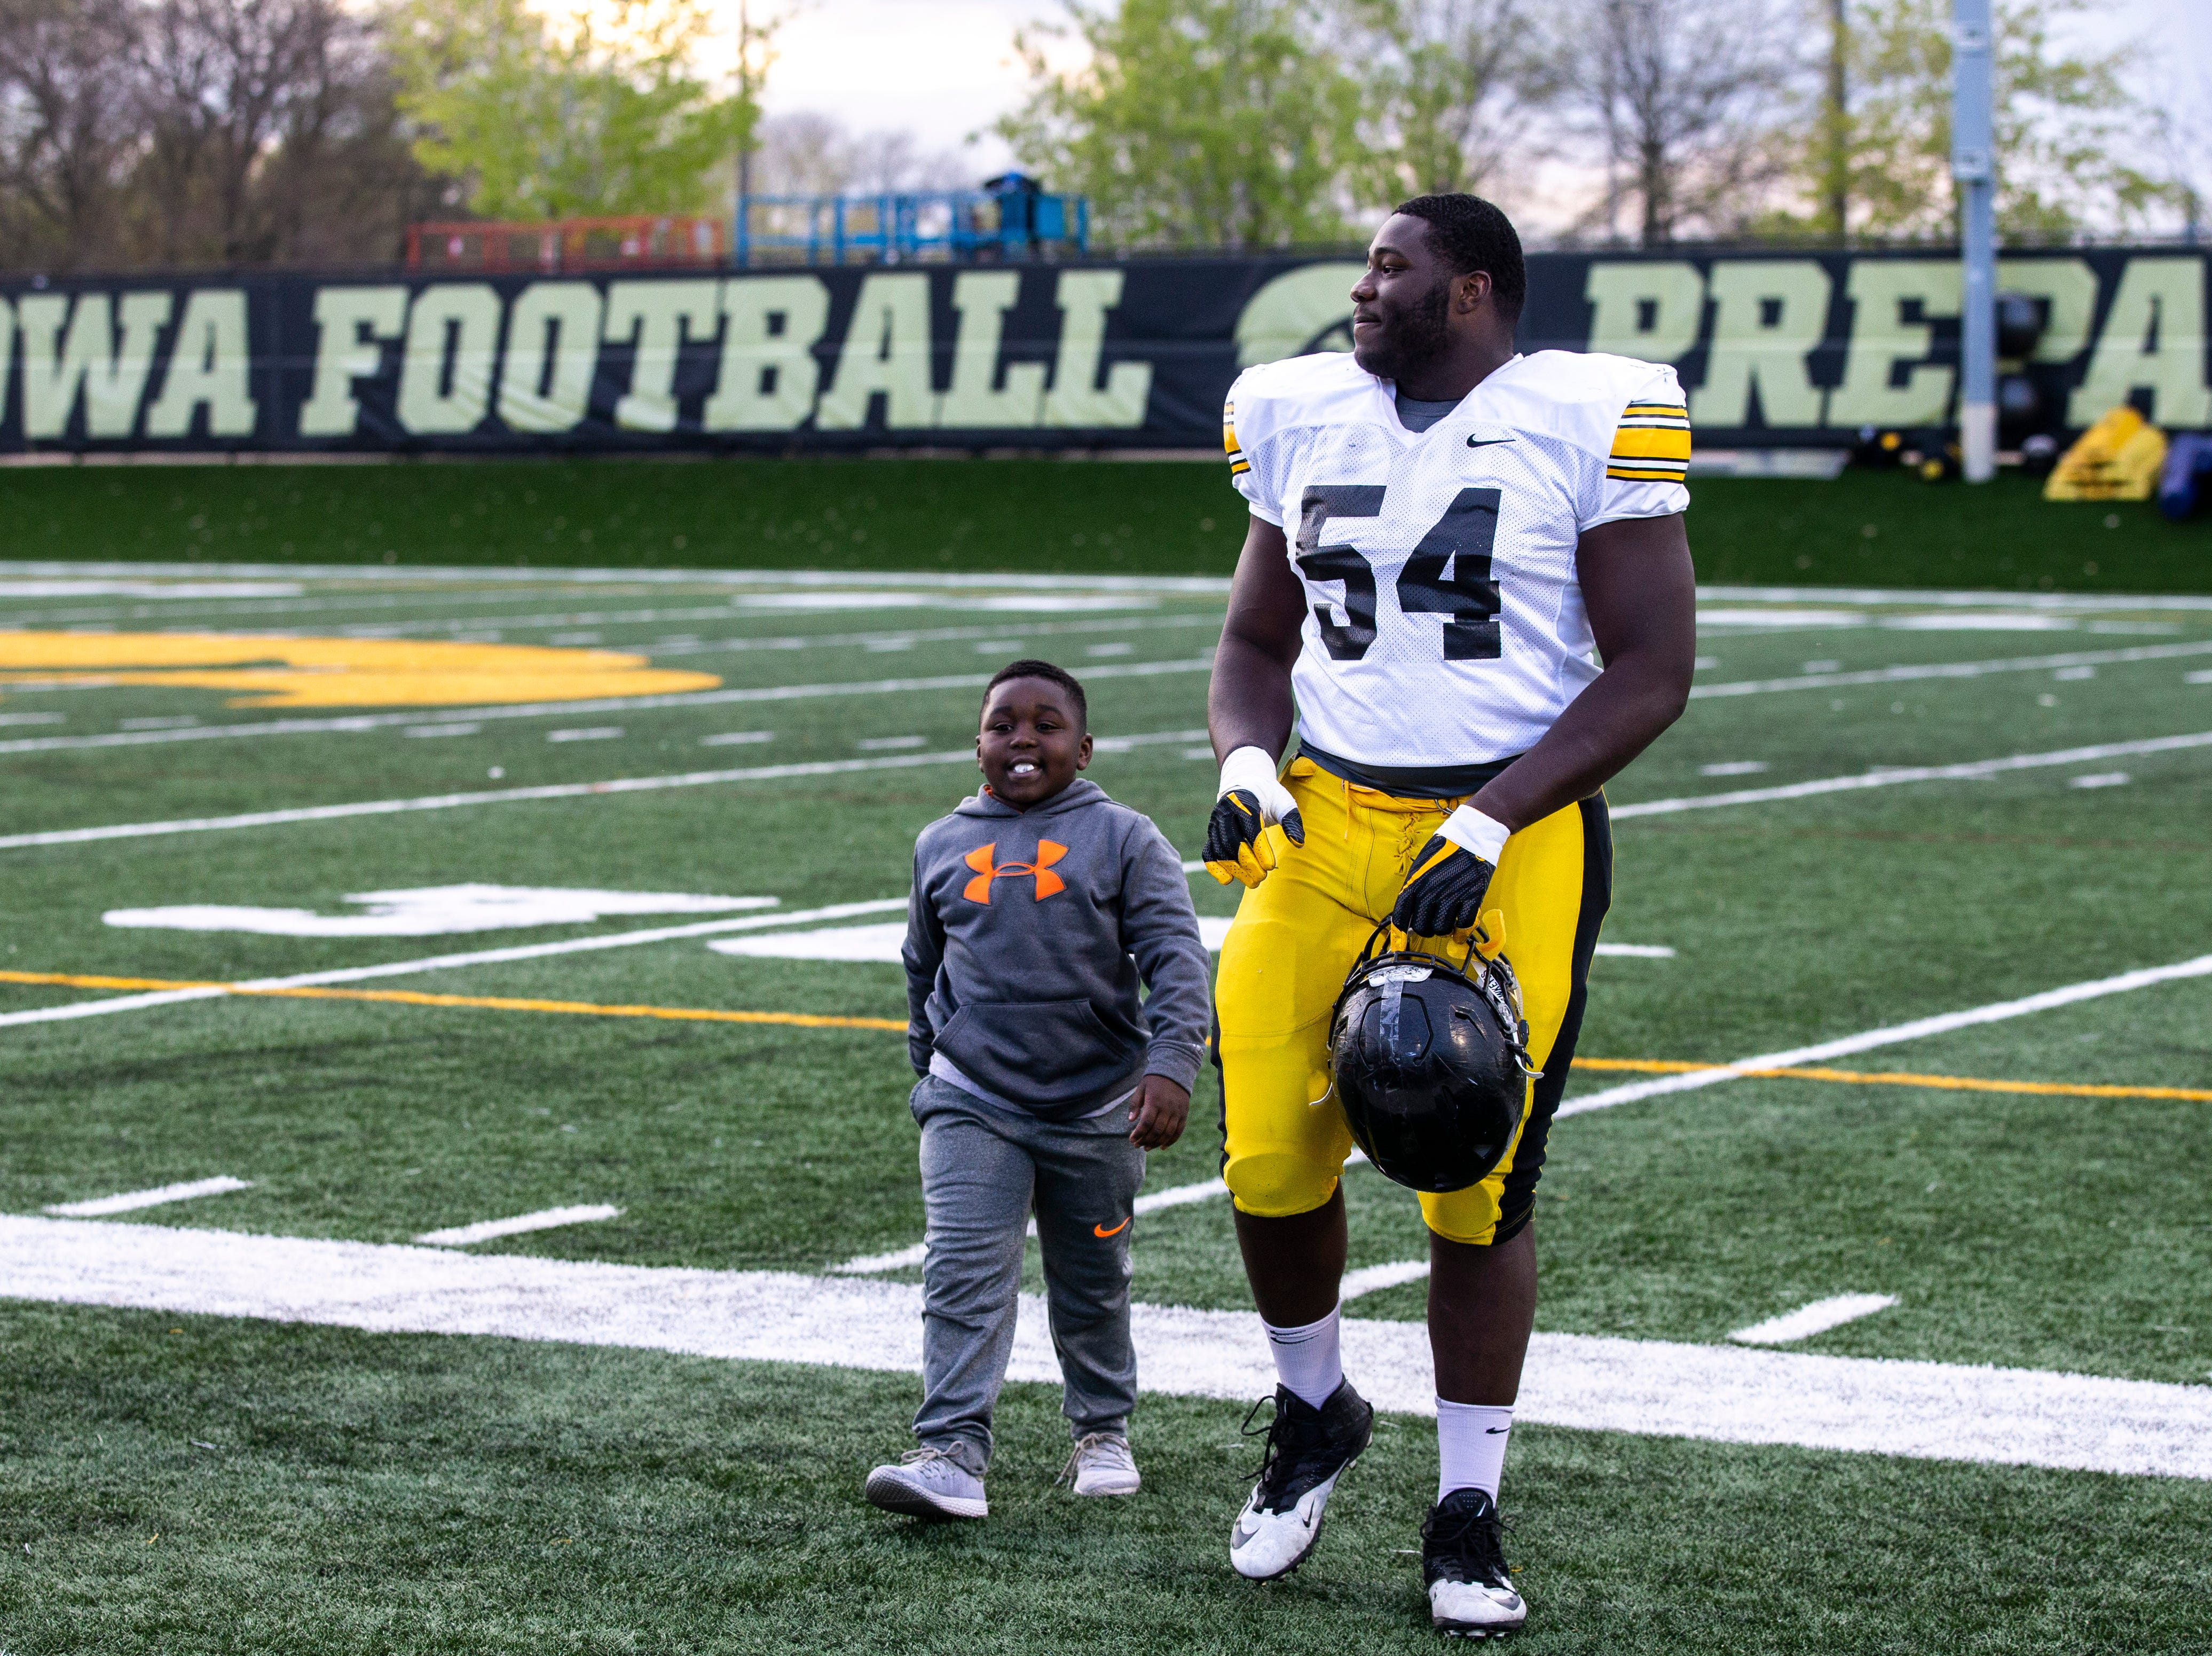 Iowa defensive tackle Daviyon Nixon (54) is greeted by his brother, Kevyn K.G. Nixon, 7, after the final spring football practice, Friday, April 26, 2019, at the University of Iowa outdoor practice facility in Iowa City, Iowa.